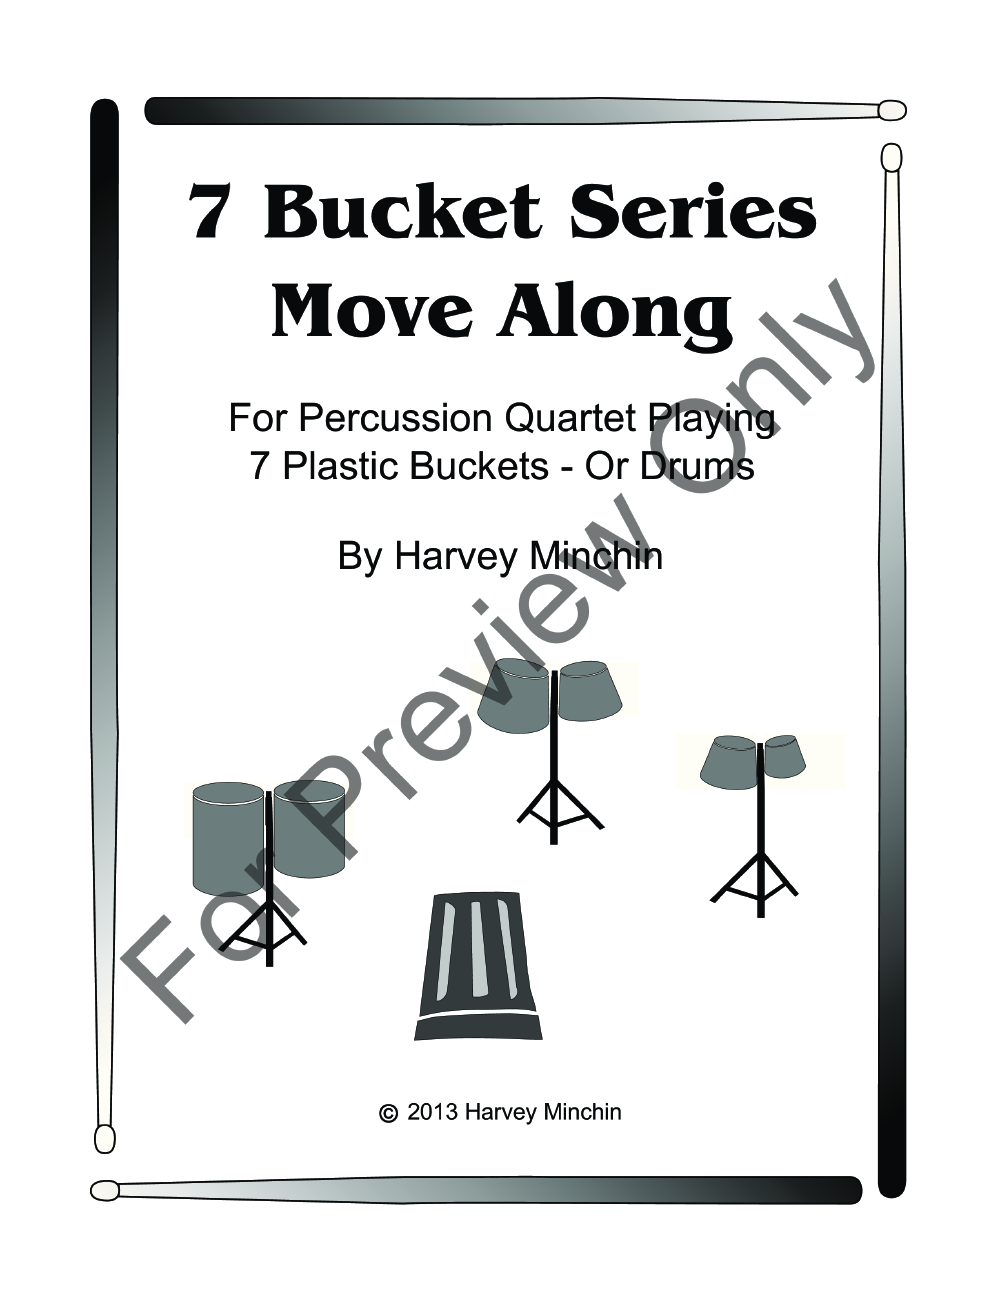 7 Bucket Series - Move Along Thumbnail